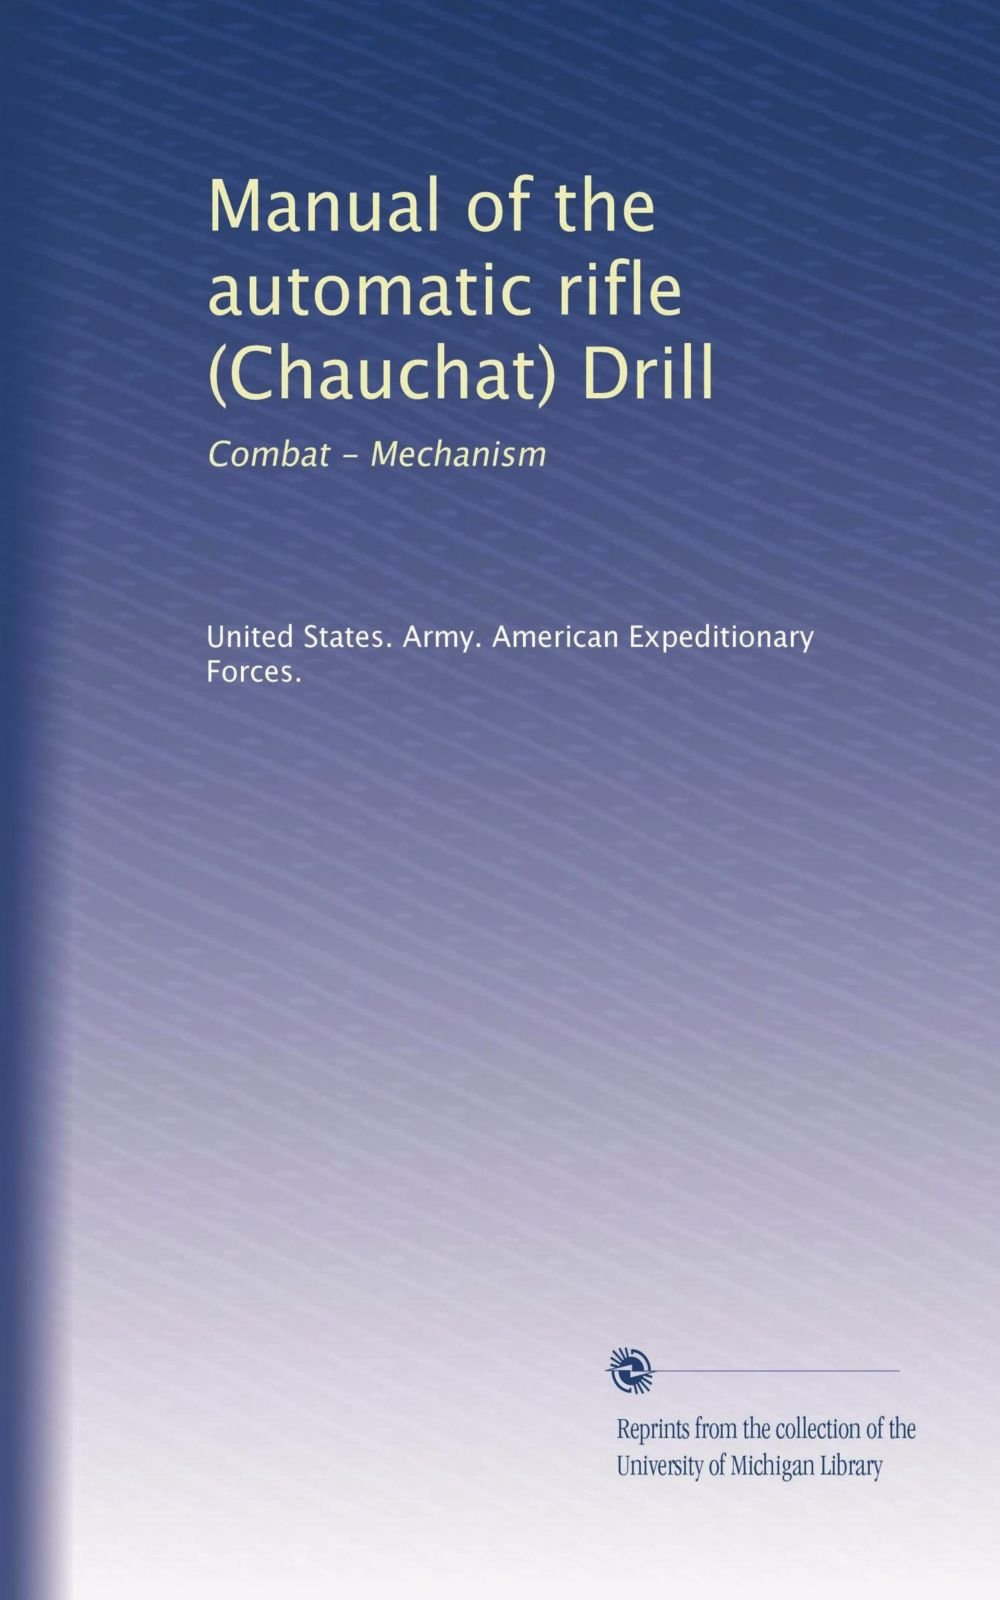 Manual of the automatic rifle (Chauchat) Drill: Combat - Mechanism: United  States. Army. American Expeditionary Forces.: Amazon.com: Books